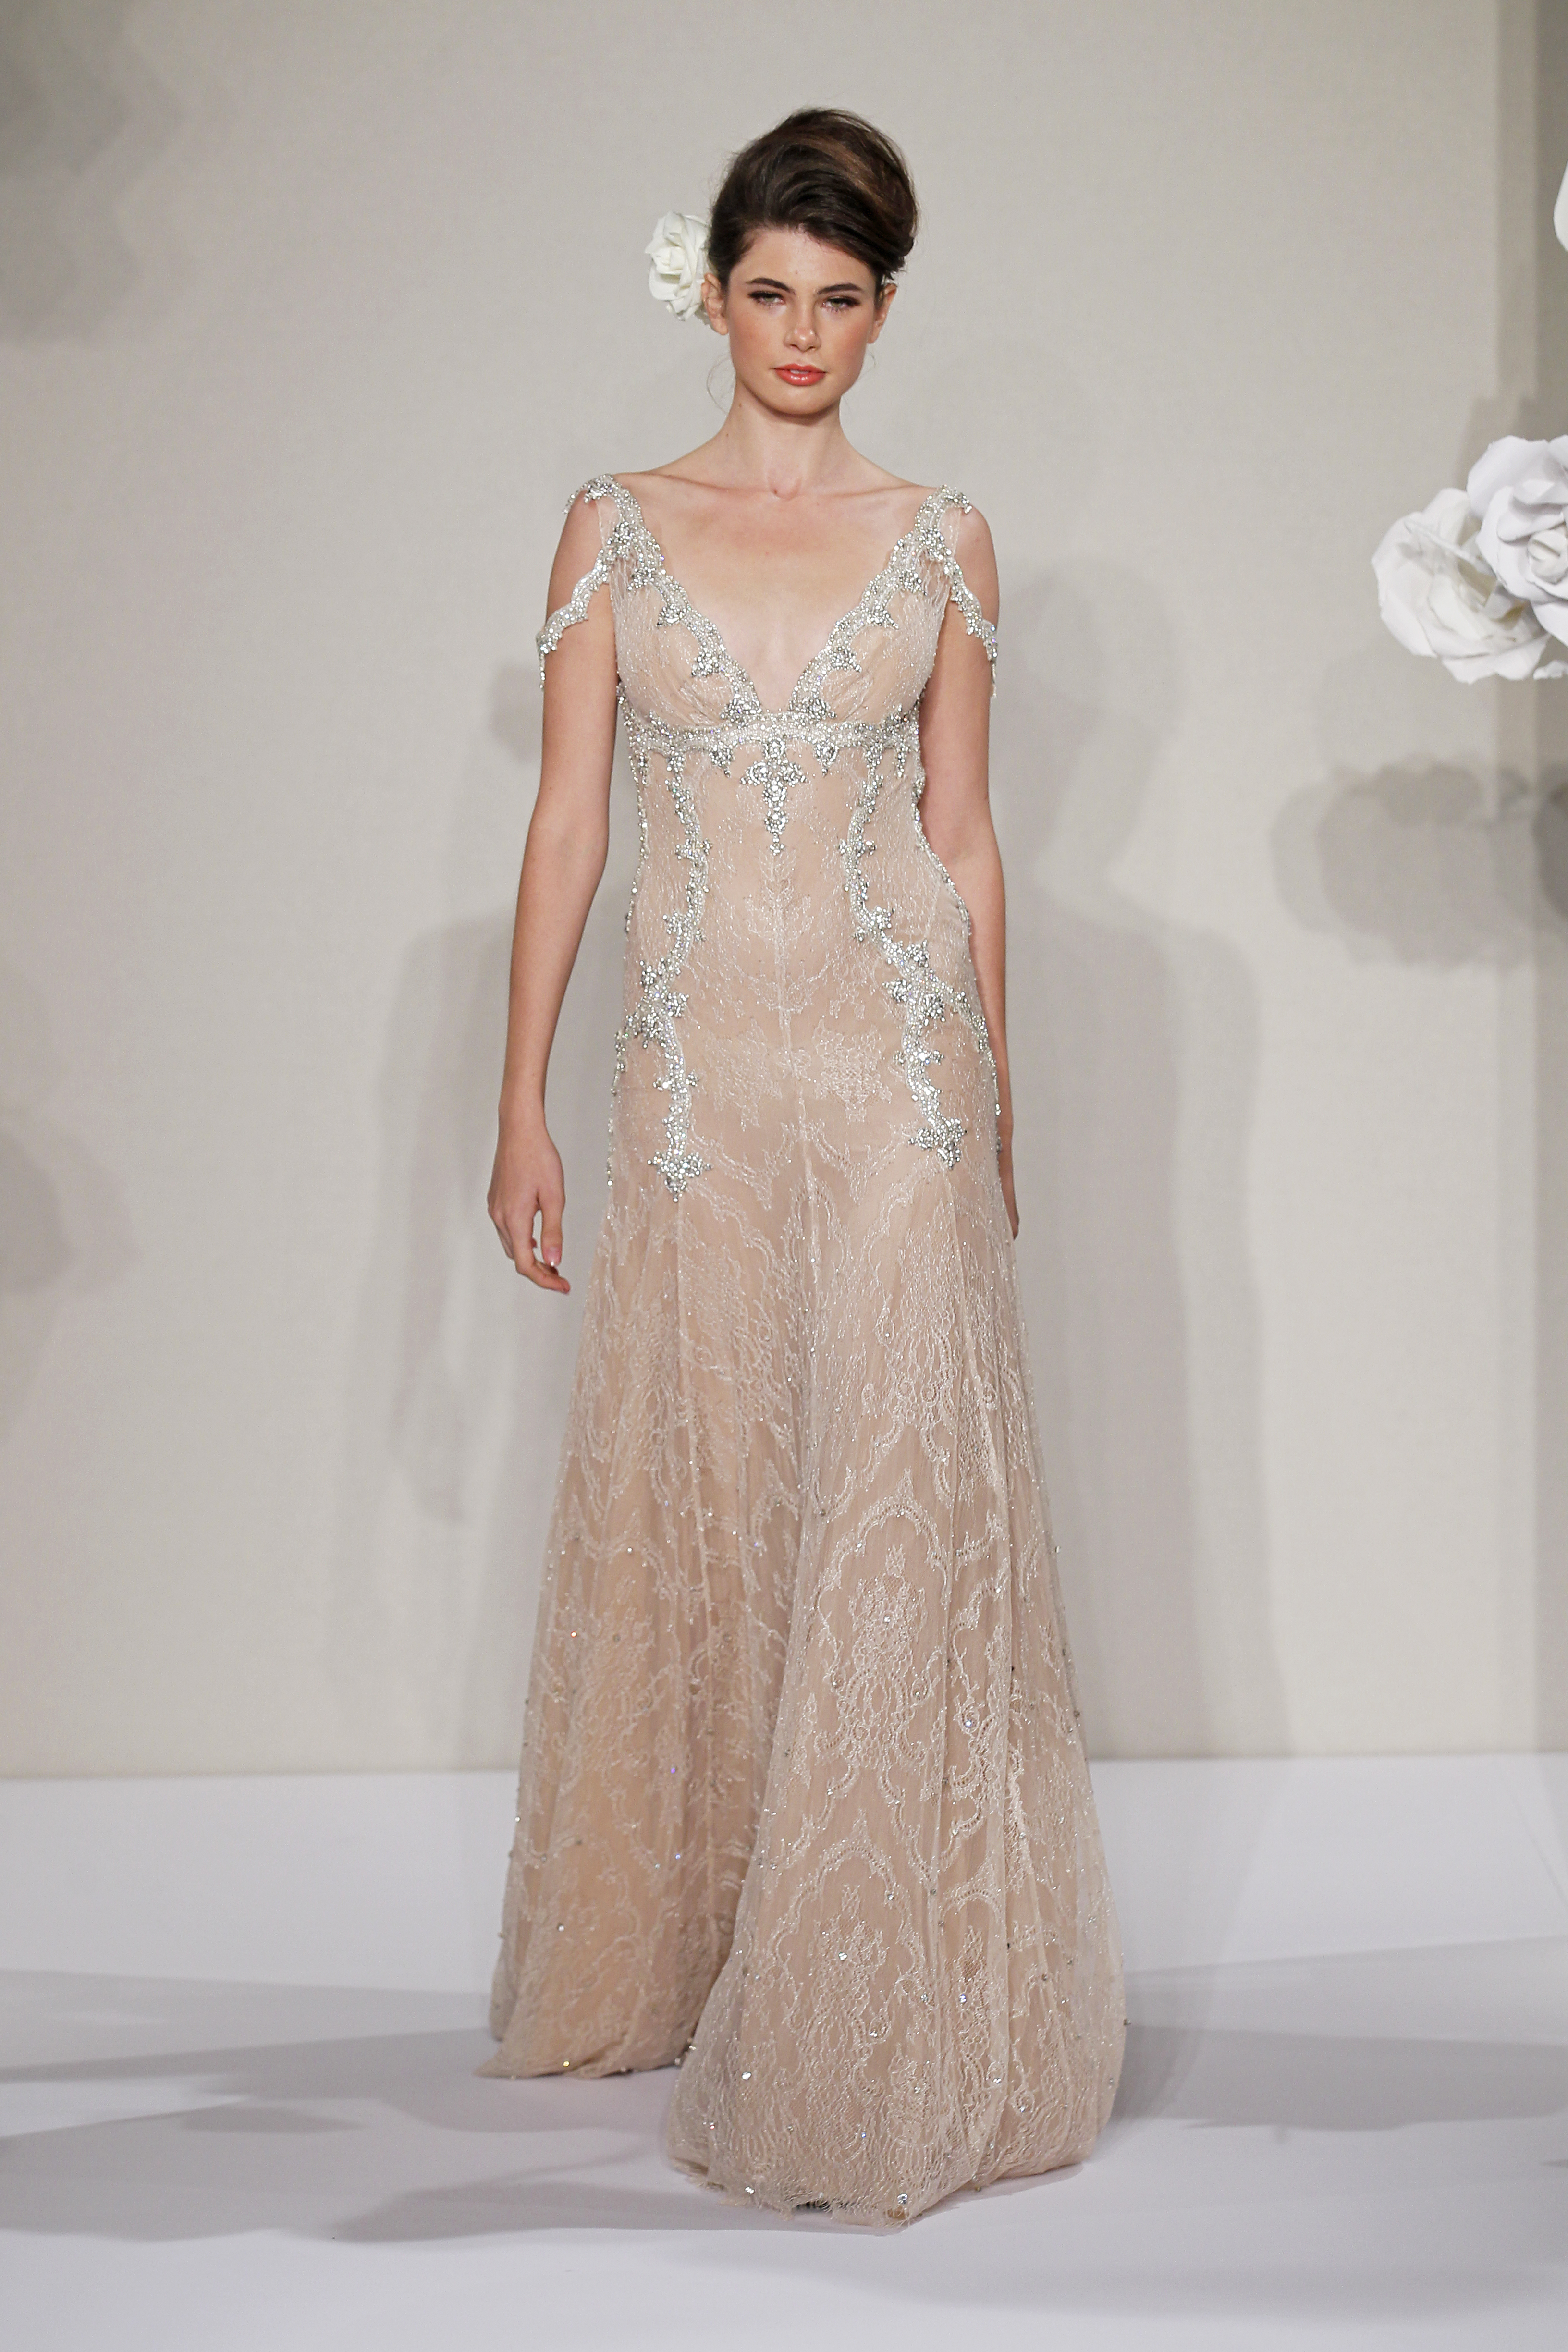 Wedding Dresses, A-line Wedding Dresses, Lace Wedding Dresses, Romantic Wedding Dresses, Hollywood Glam Wedding Dresses, Fashion, ivory, pink, Shabby Chic, Romantic, Lace, A-line, Beading, V-neck, V-neck Wedding Dresses, Floor, Formal, Natural, Hip, Sleeveless, Pnina tornai, Kleinfeld, hollywood glam, Beaded Wedding Dresses, Formal Wedding Dresses, Floor Wedding Dresses, Hip Wedding Dresses, Shabby Chic Wedding Dresses